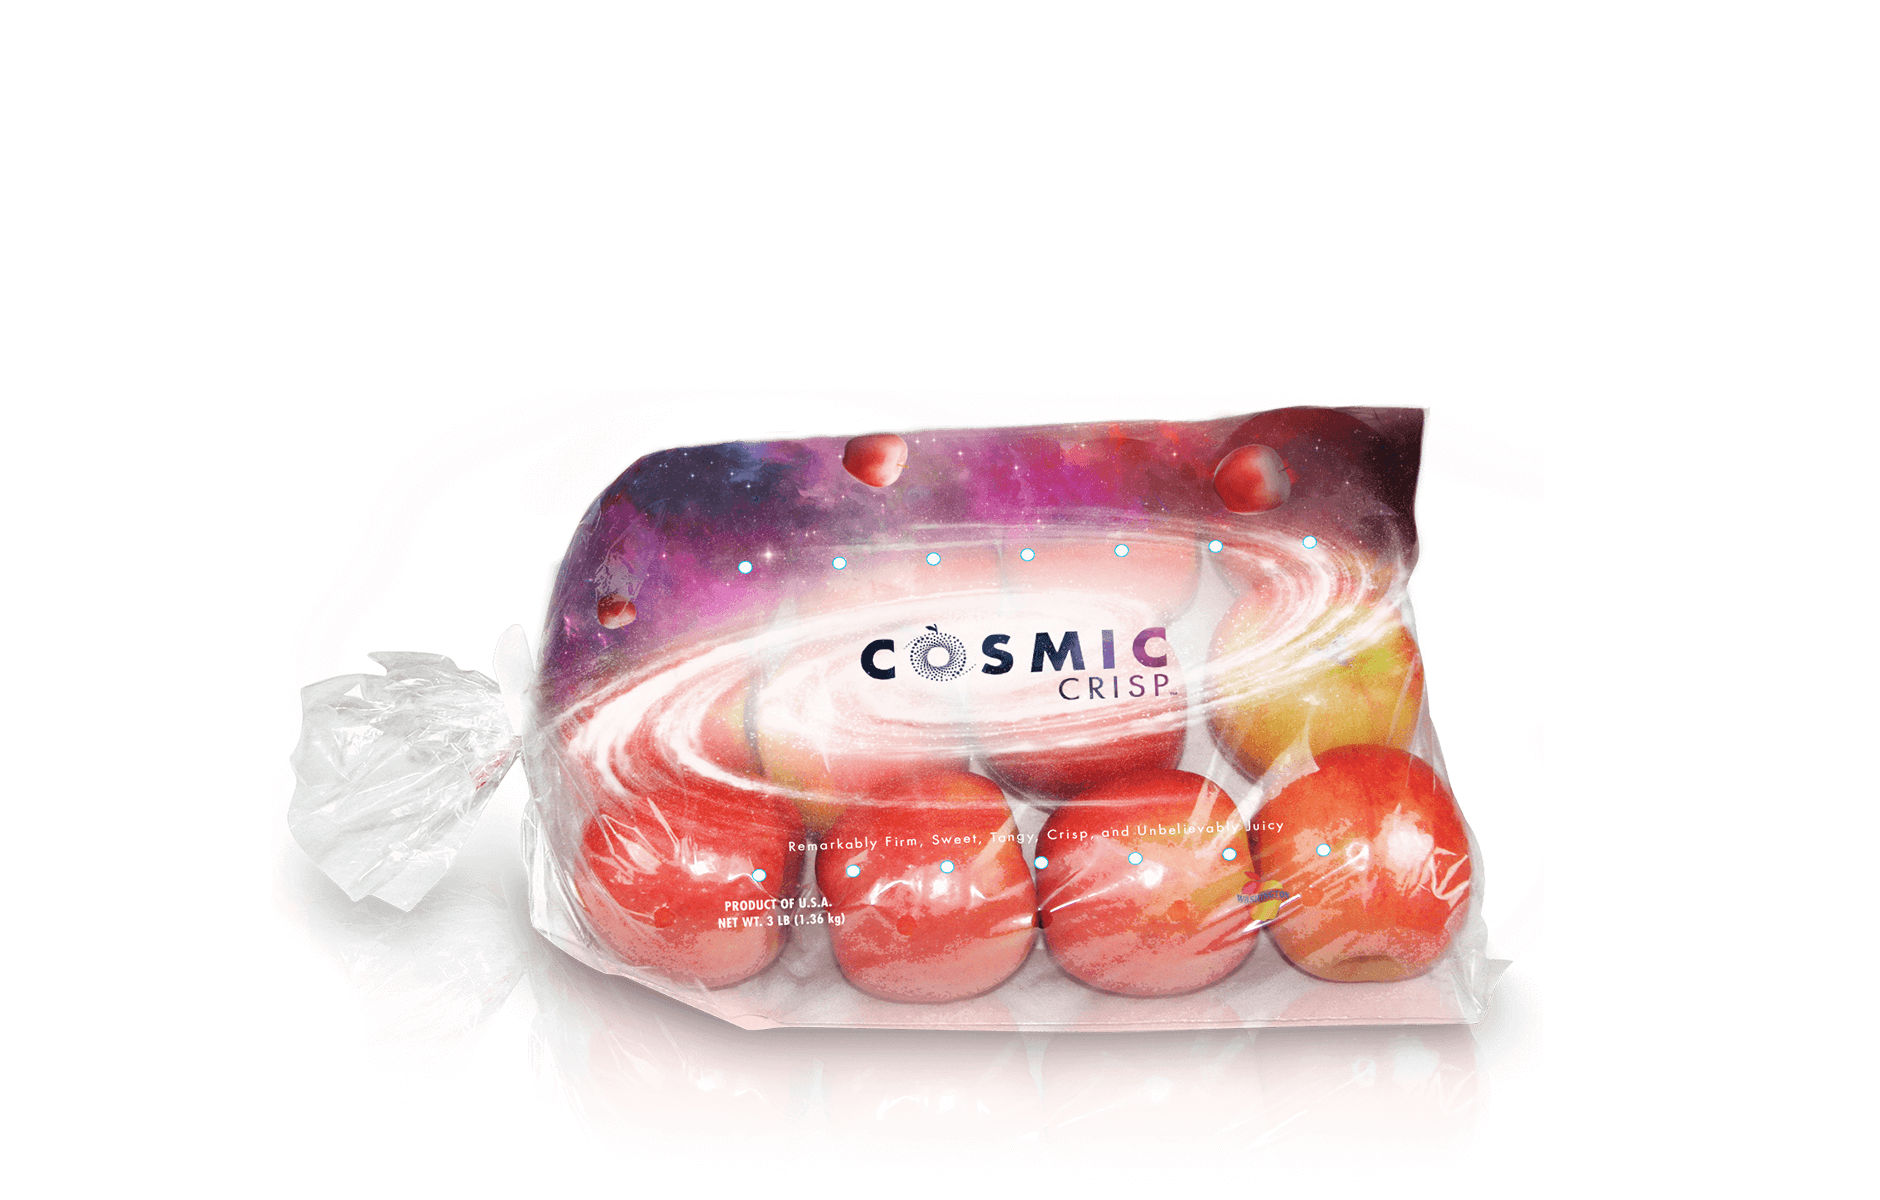 Polybag  • Clear bag with handle • Printed cosmos graphic with clear area to show product